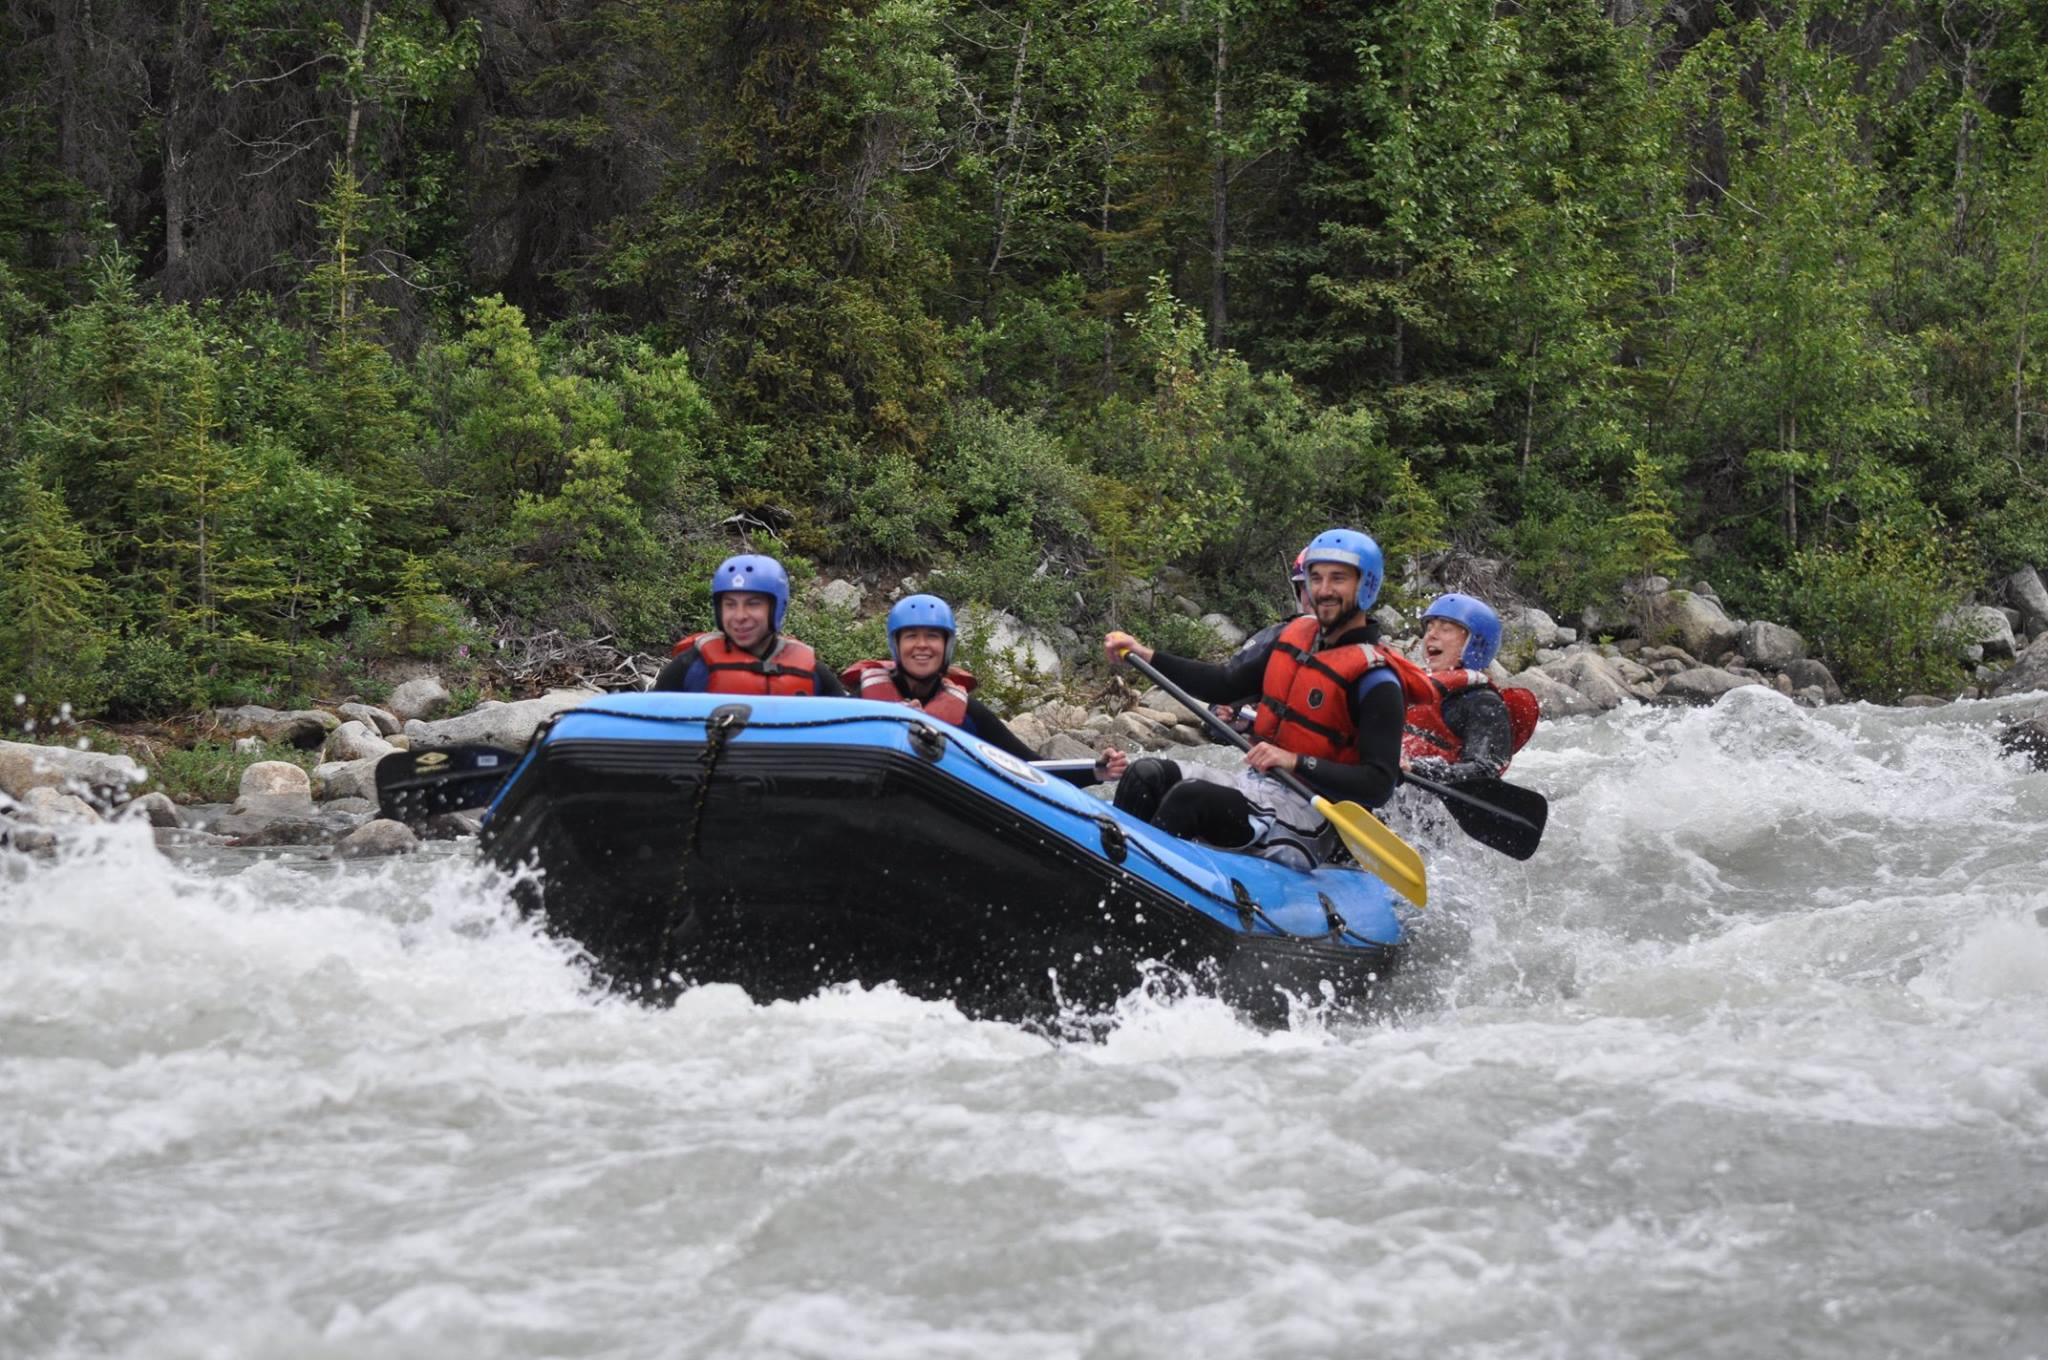 Exciting rapids await on the Blanchard River